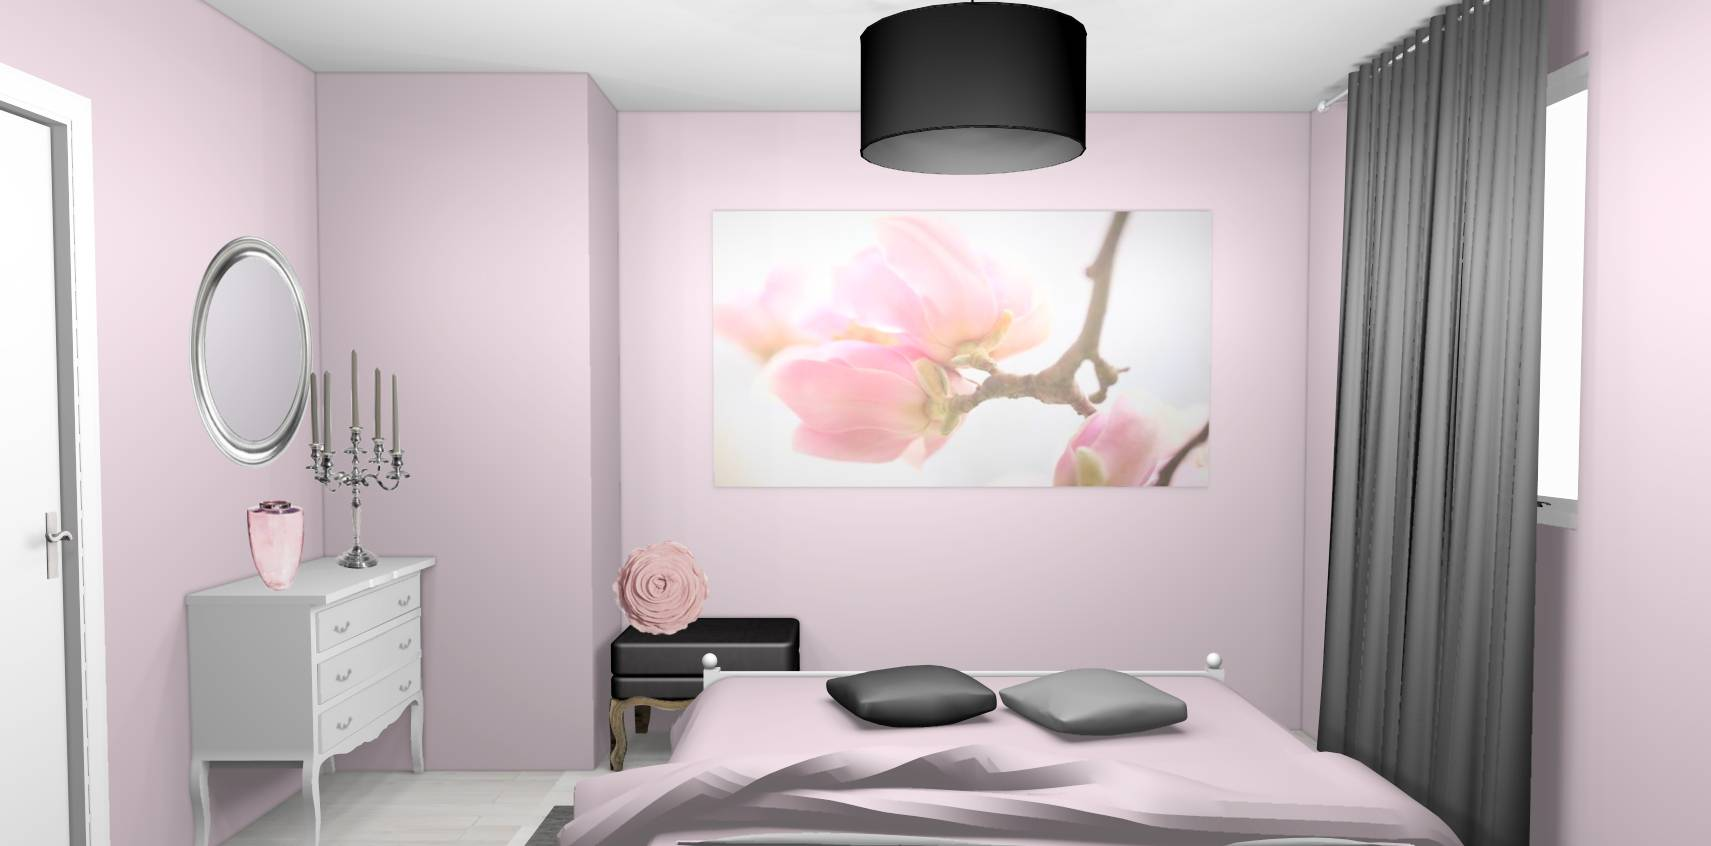 papier peint plage mural dijon artisan travaux publics papier peint en couleur. Black Bedroom Furniture Sets. Home Design Ideas